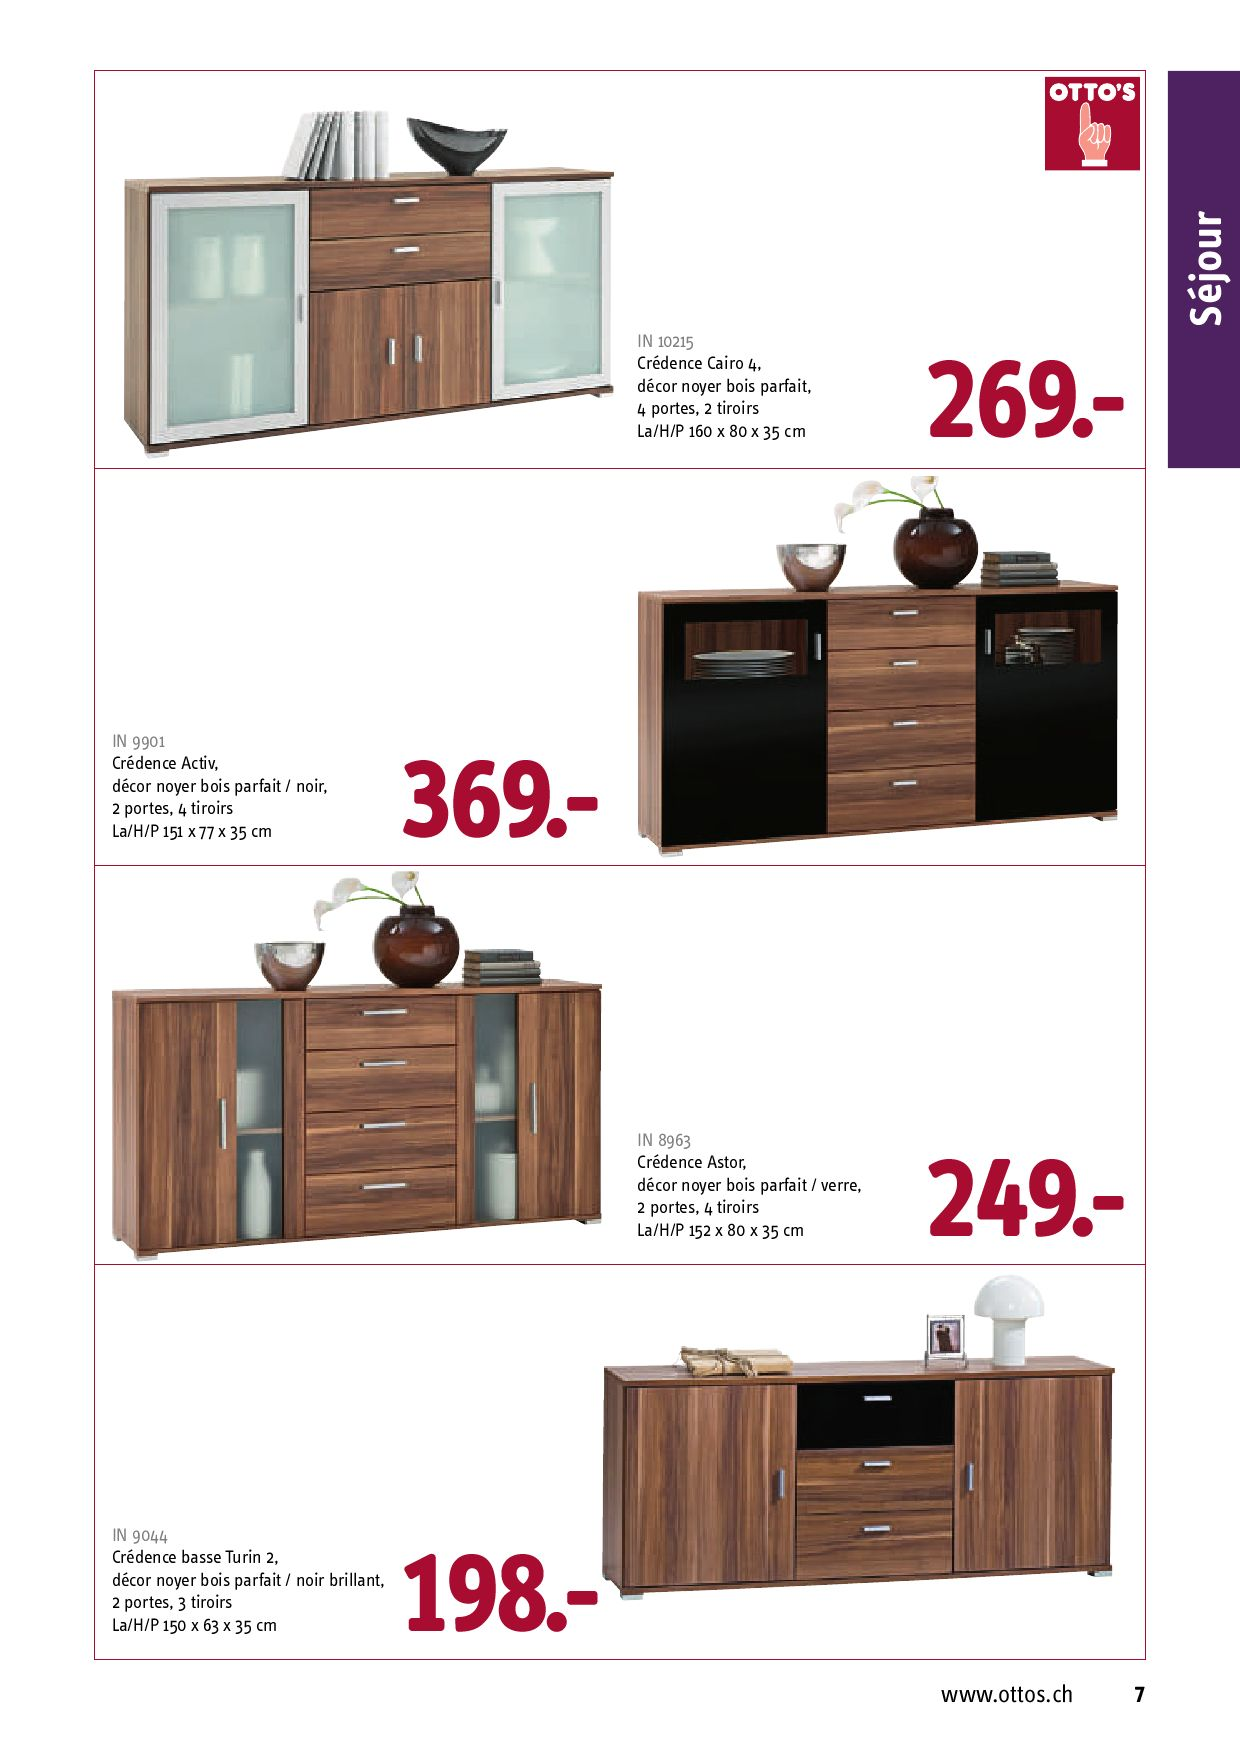 otto 39 s catalogue de meubles 09 by ottos ag switzerland page 11 issuu. Black Bedroom Furniture Sets. Home Design Ideas